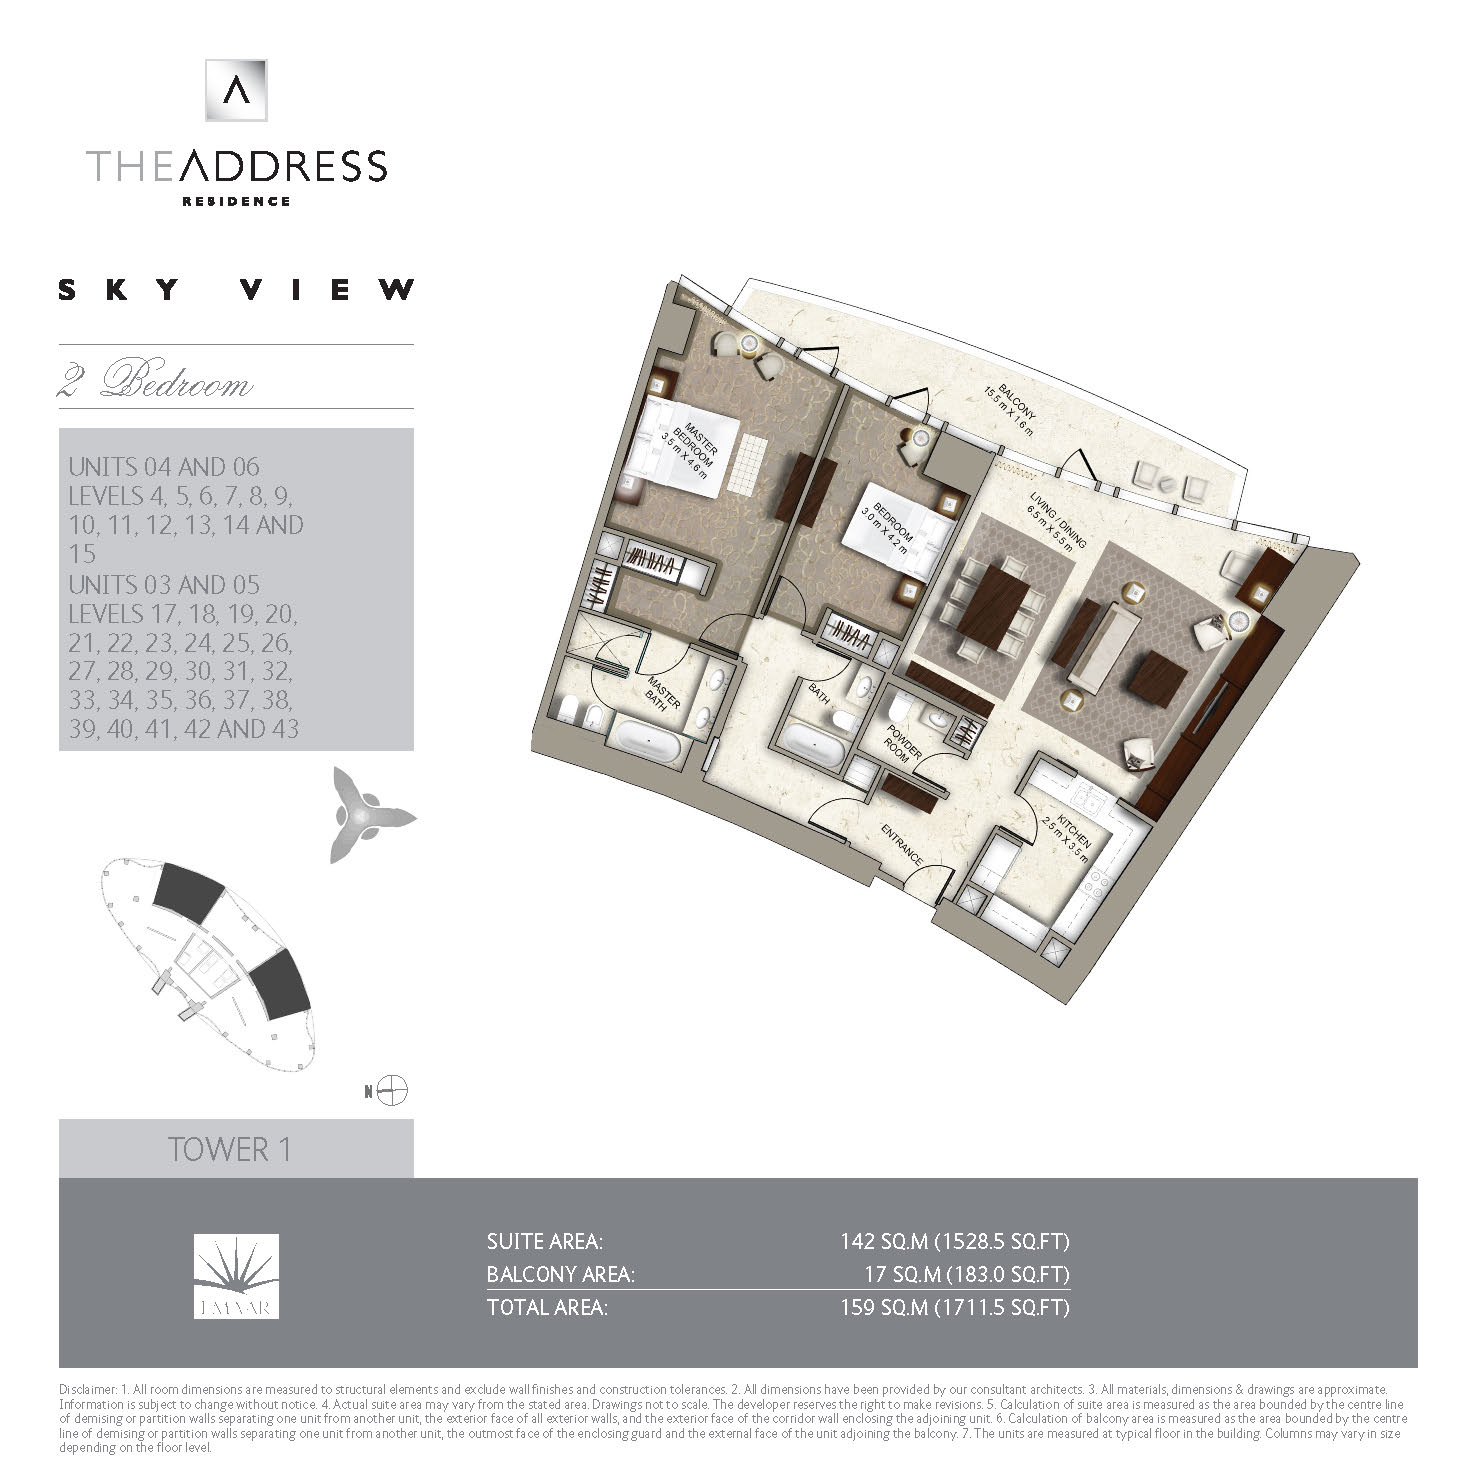 Floor plans the address sky view towers downtown dubai for View floor plans